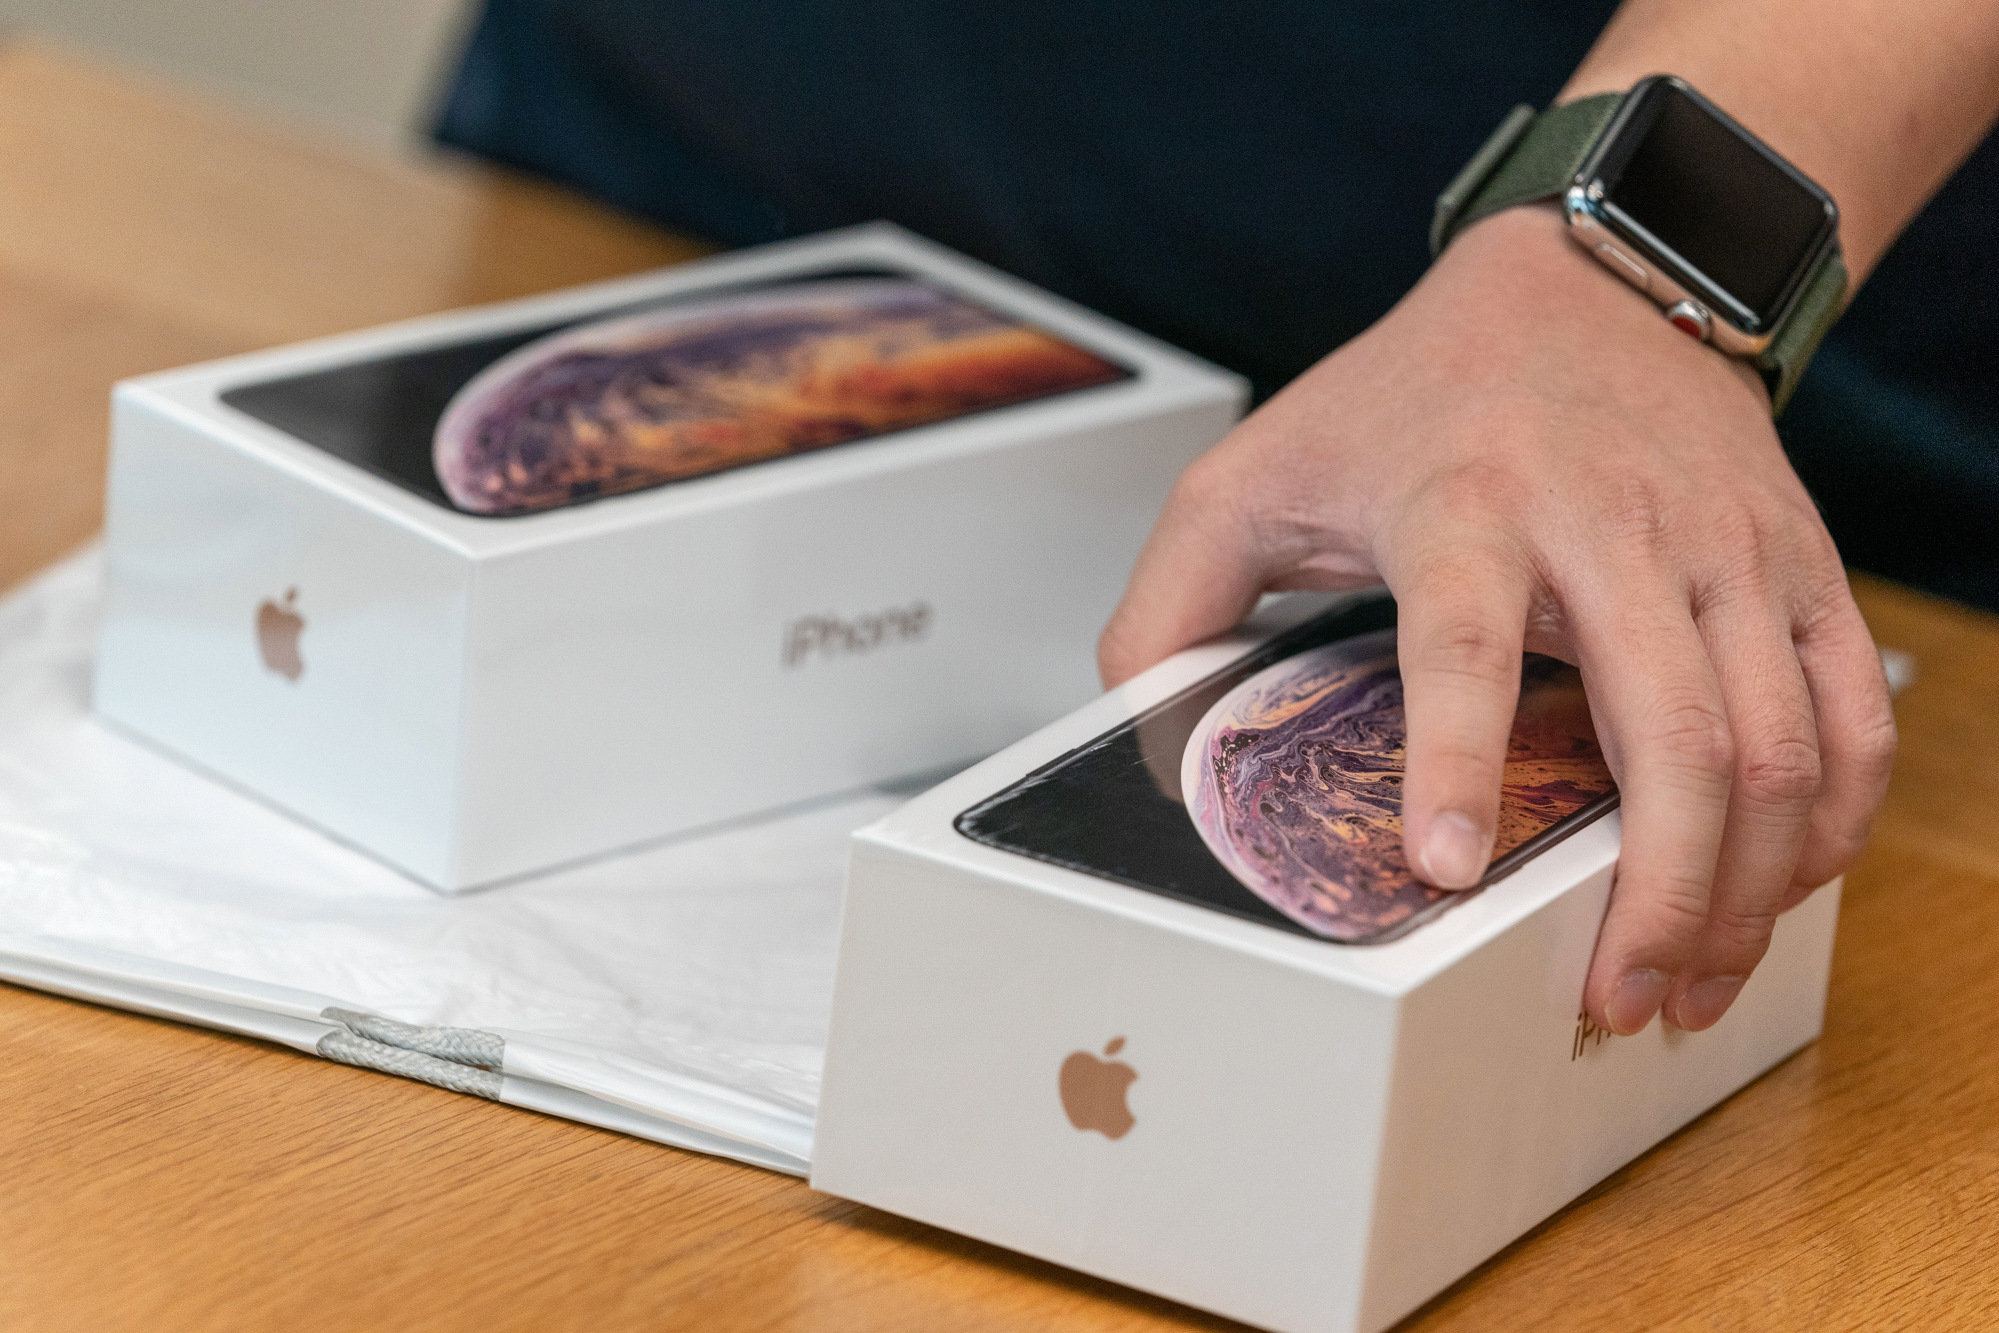 bloomberg.com - Debby Wu - Foxconn Is Poised to Begin Mass Production of iPhones in India